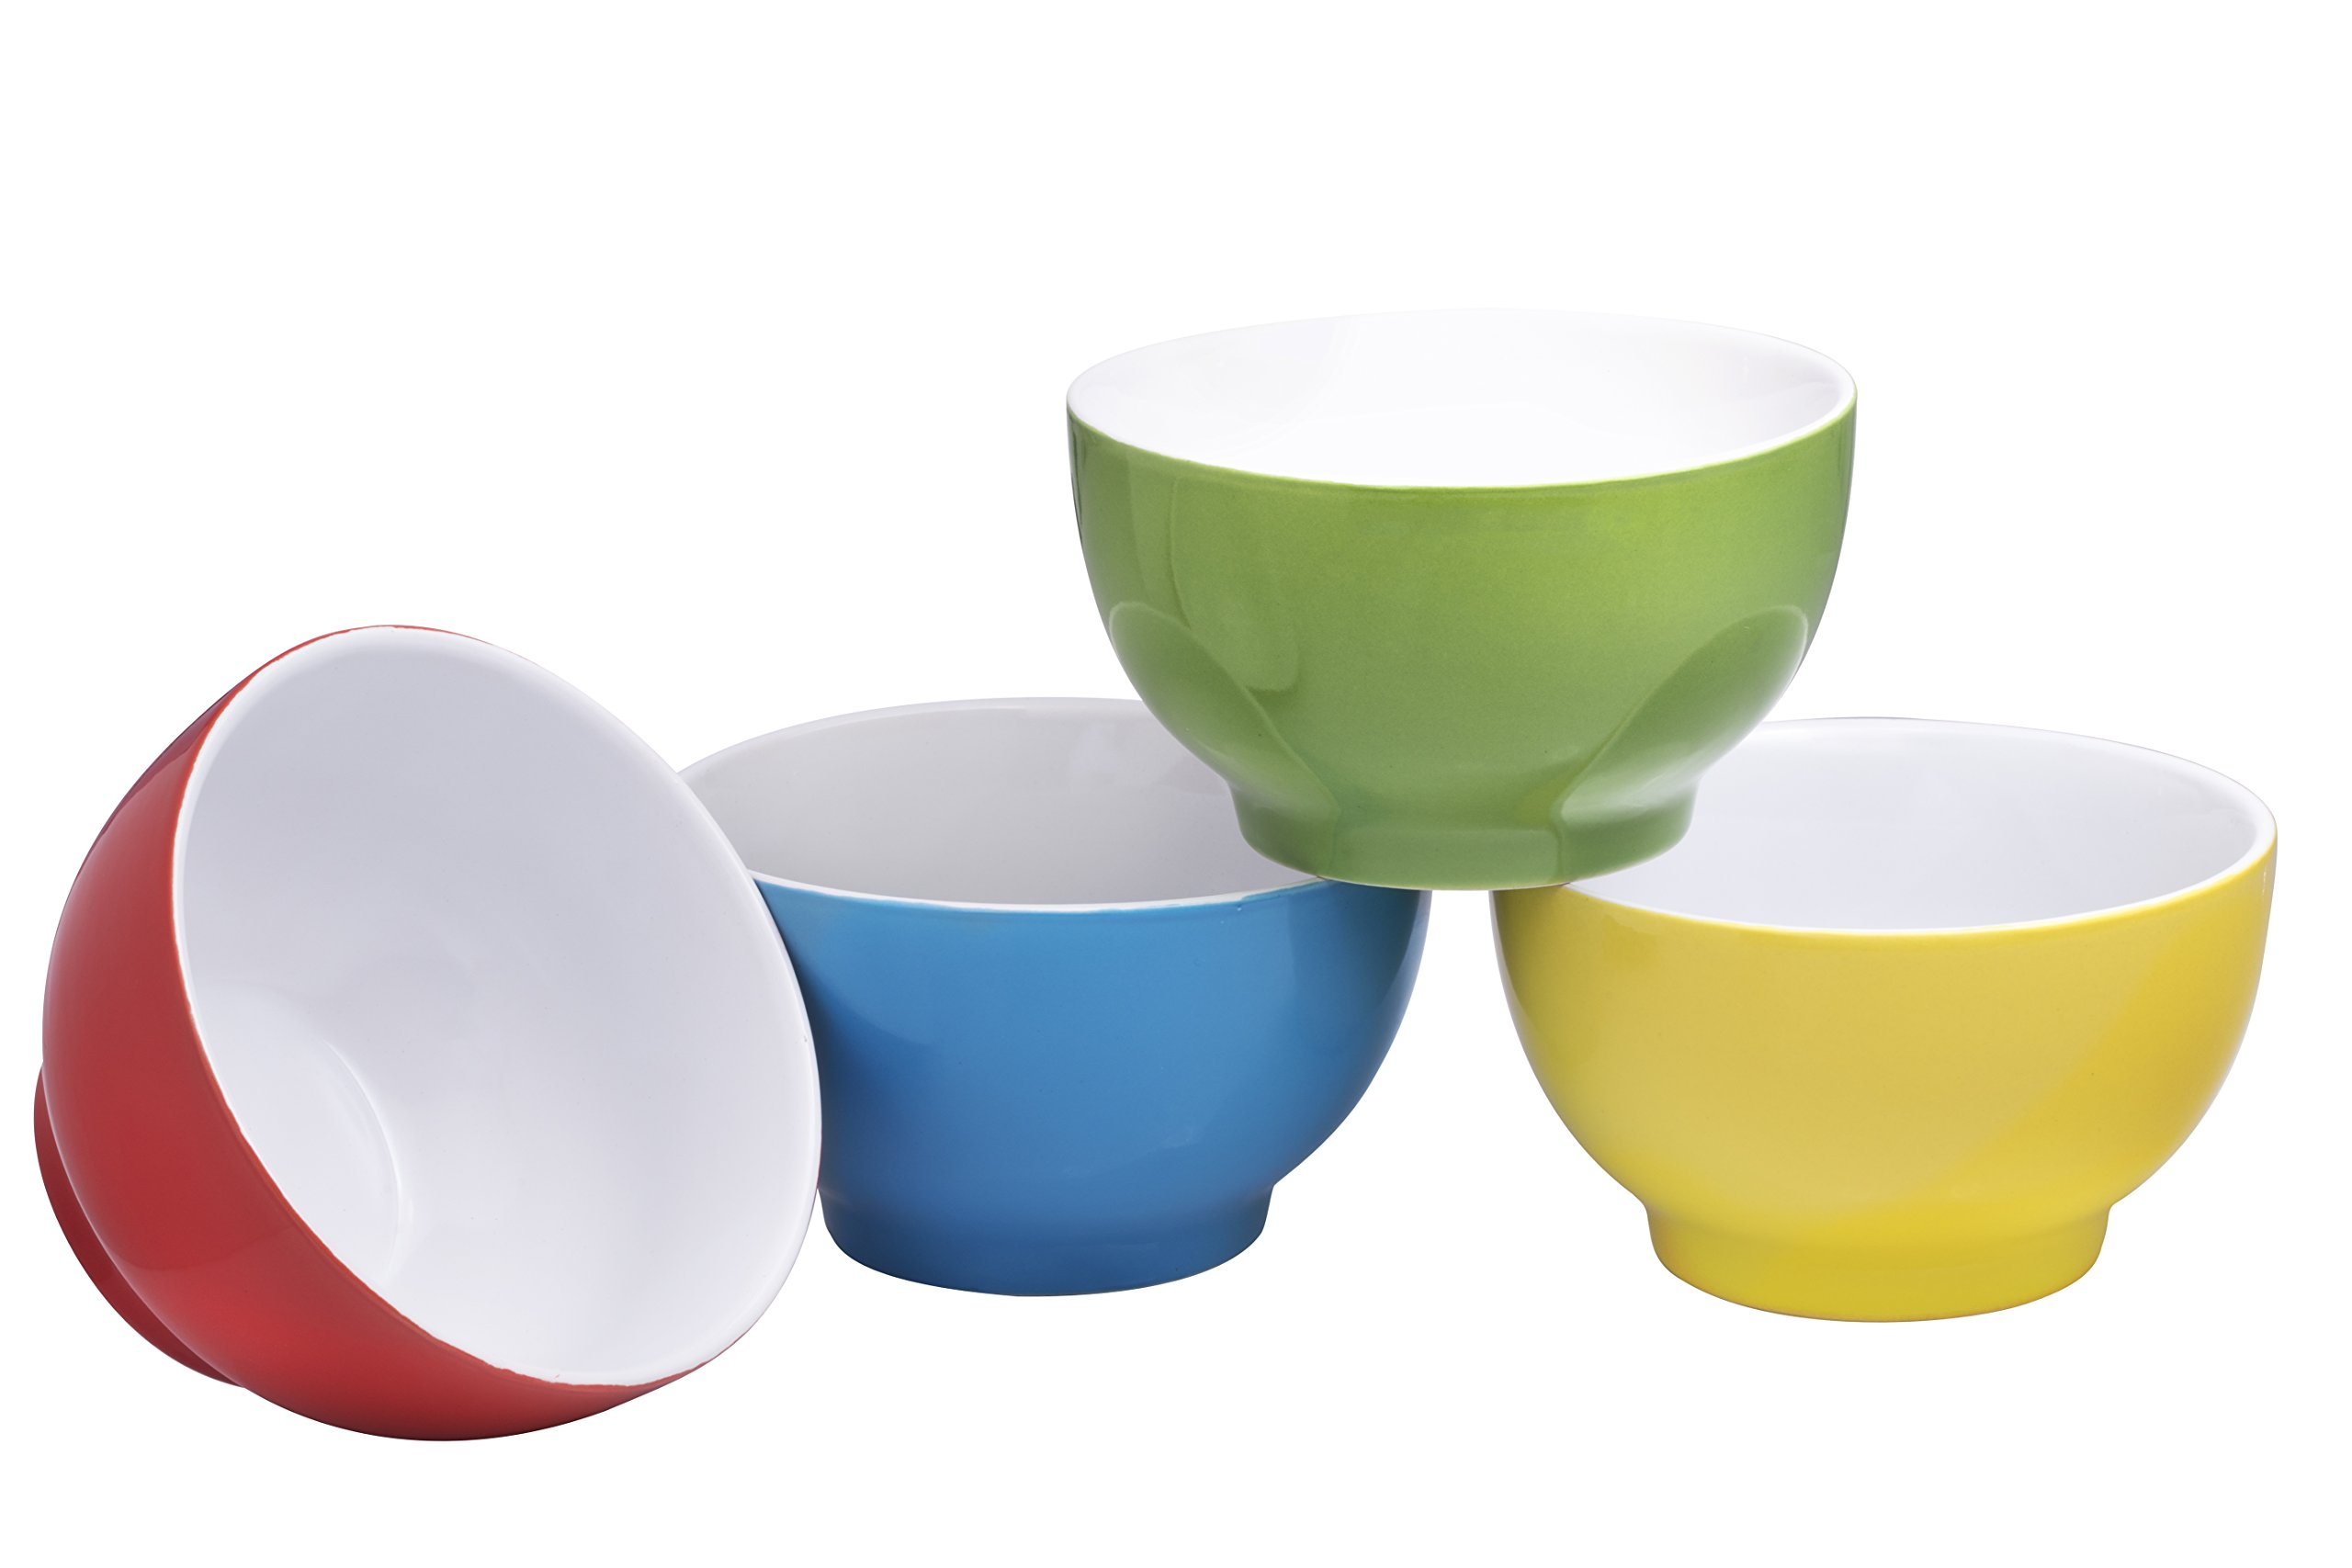 Everyday Ceramic Bowls - Cereal, Soup, Ice Cream, Salad, Pasta, Fruit, 20 oz. Set of 4, By Bruntmor (Multicolor)